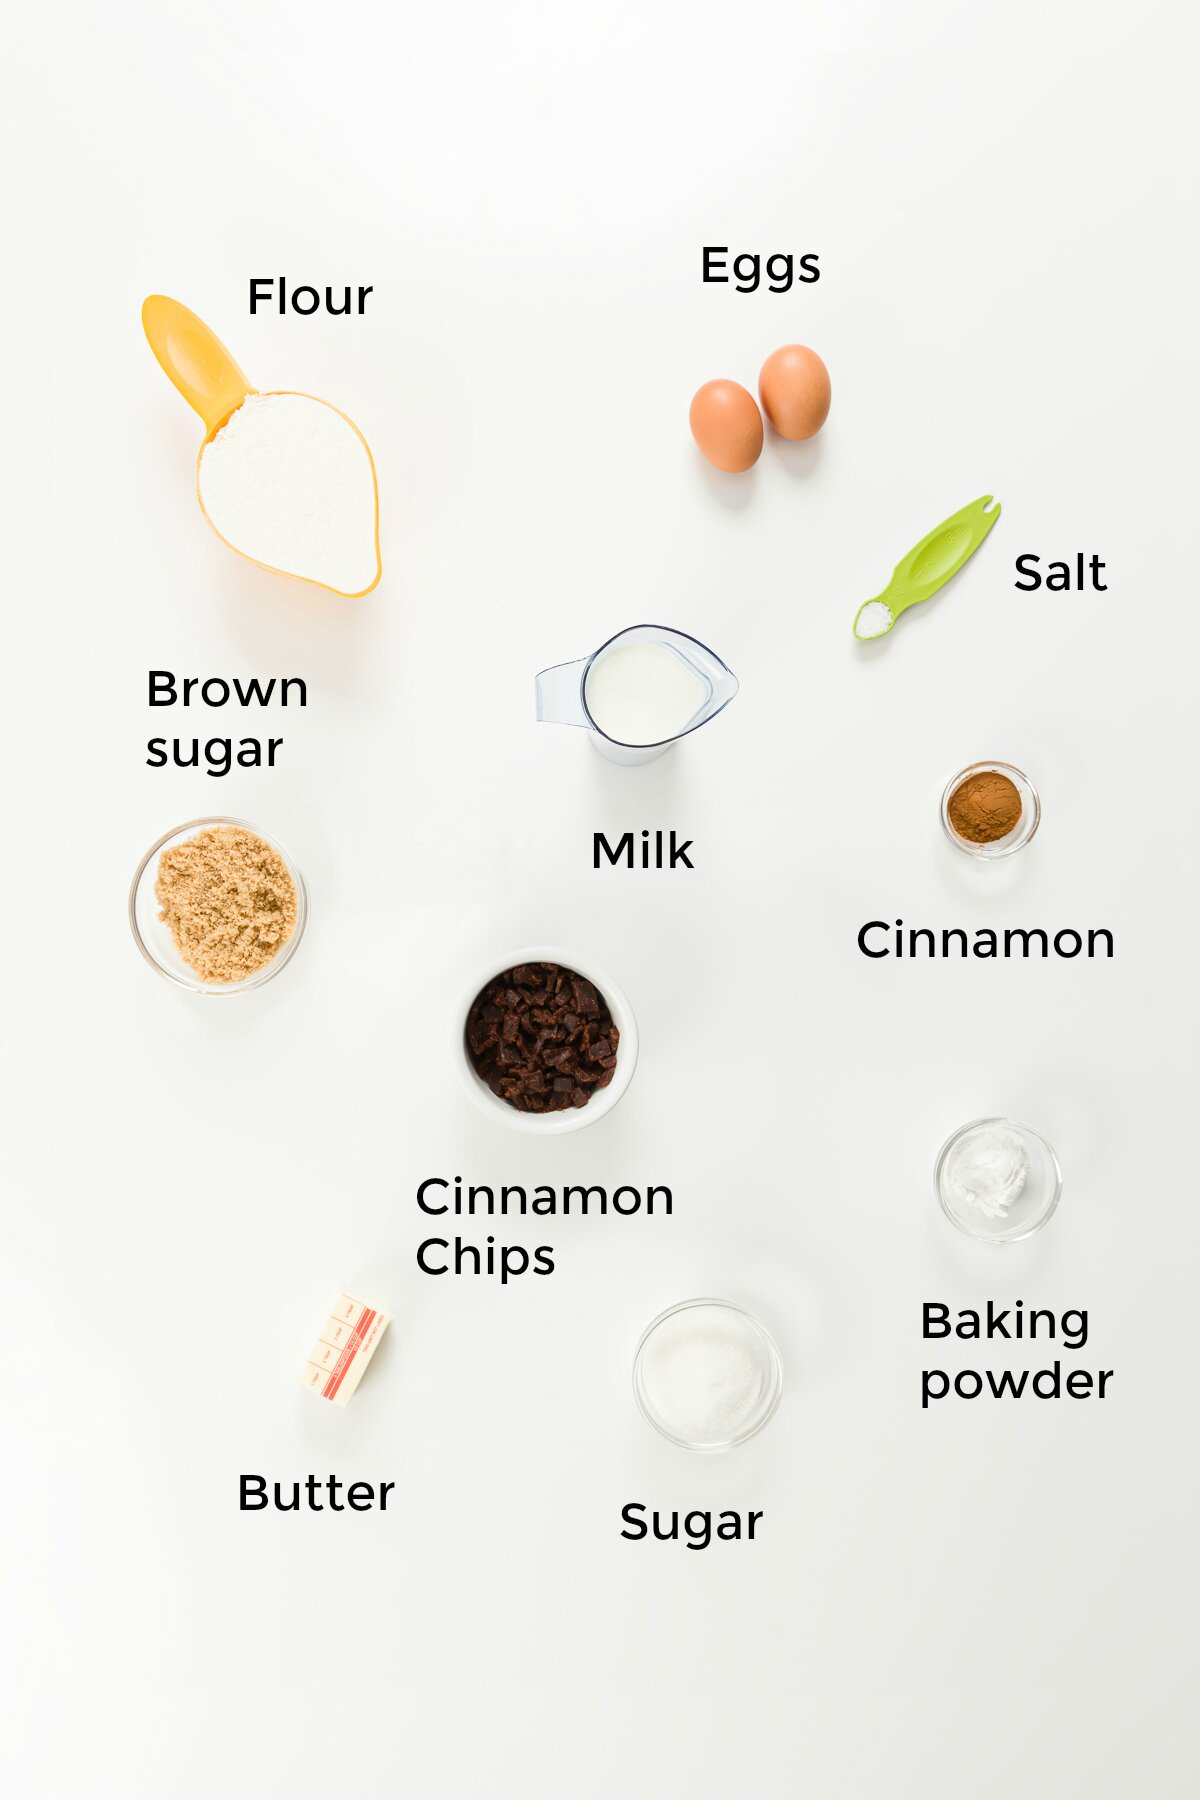 overhead photo of cinnamon muffin ingredients, labeled: flour, eggs, brown sugar, milk, salt, cinnamon, cinnamon chips, butter, sugar, and baking powder